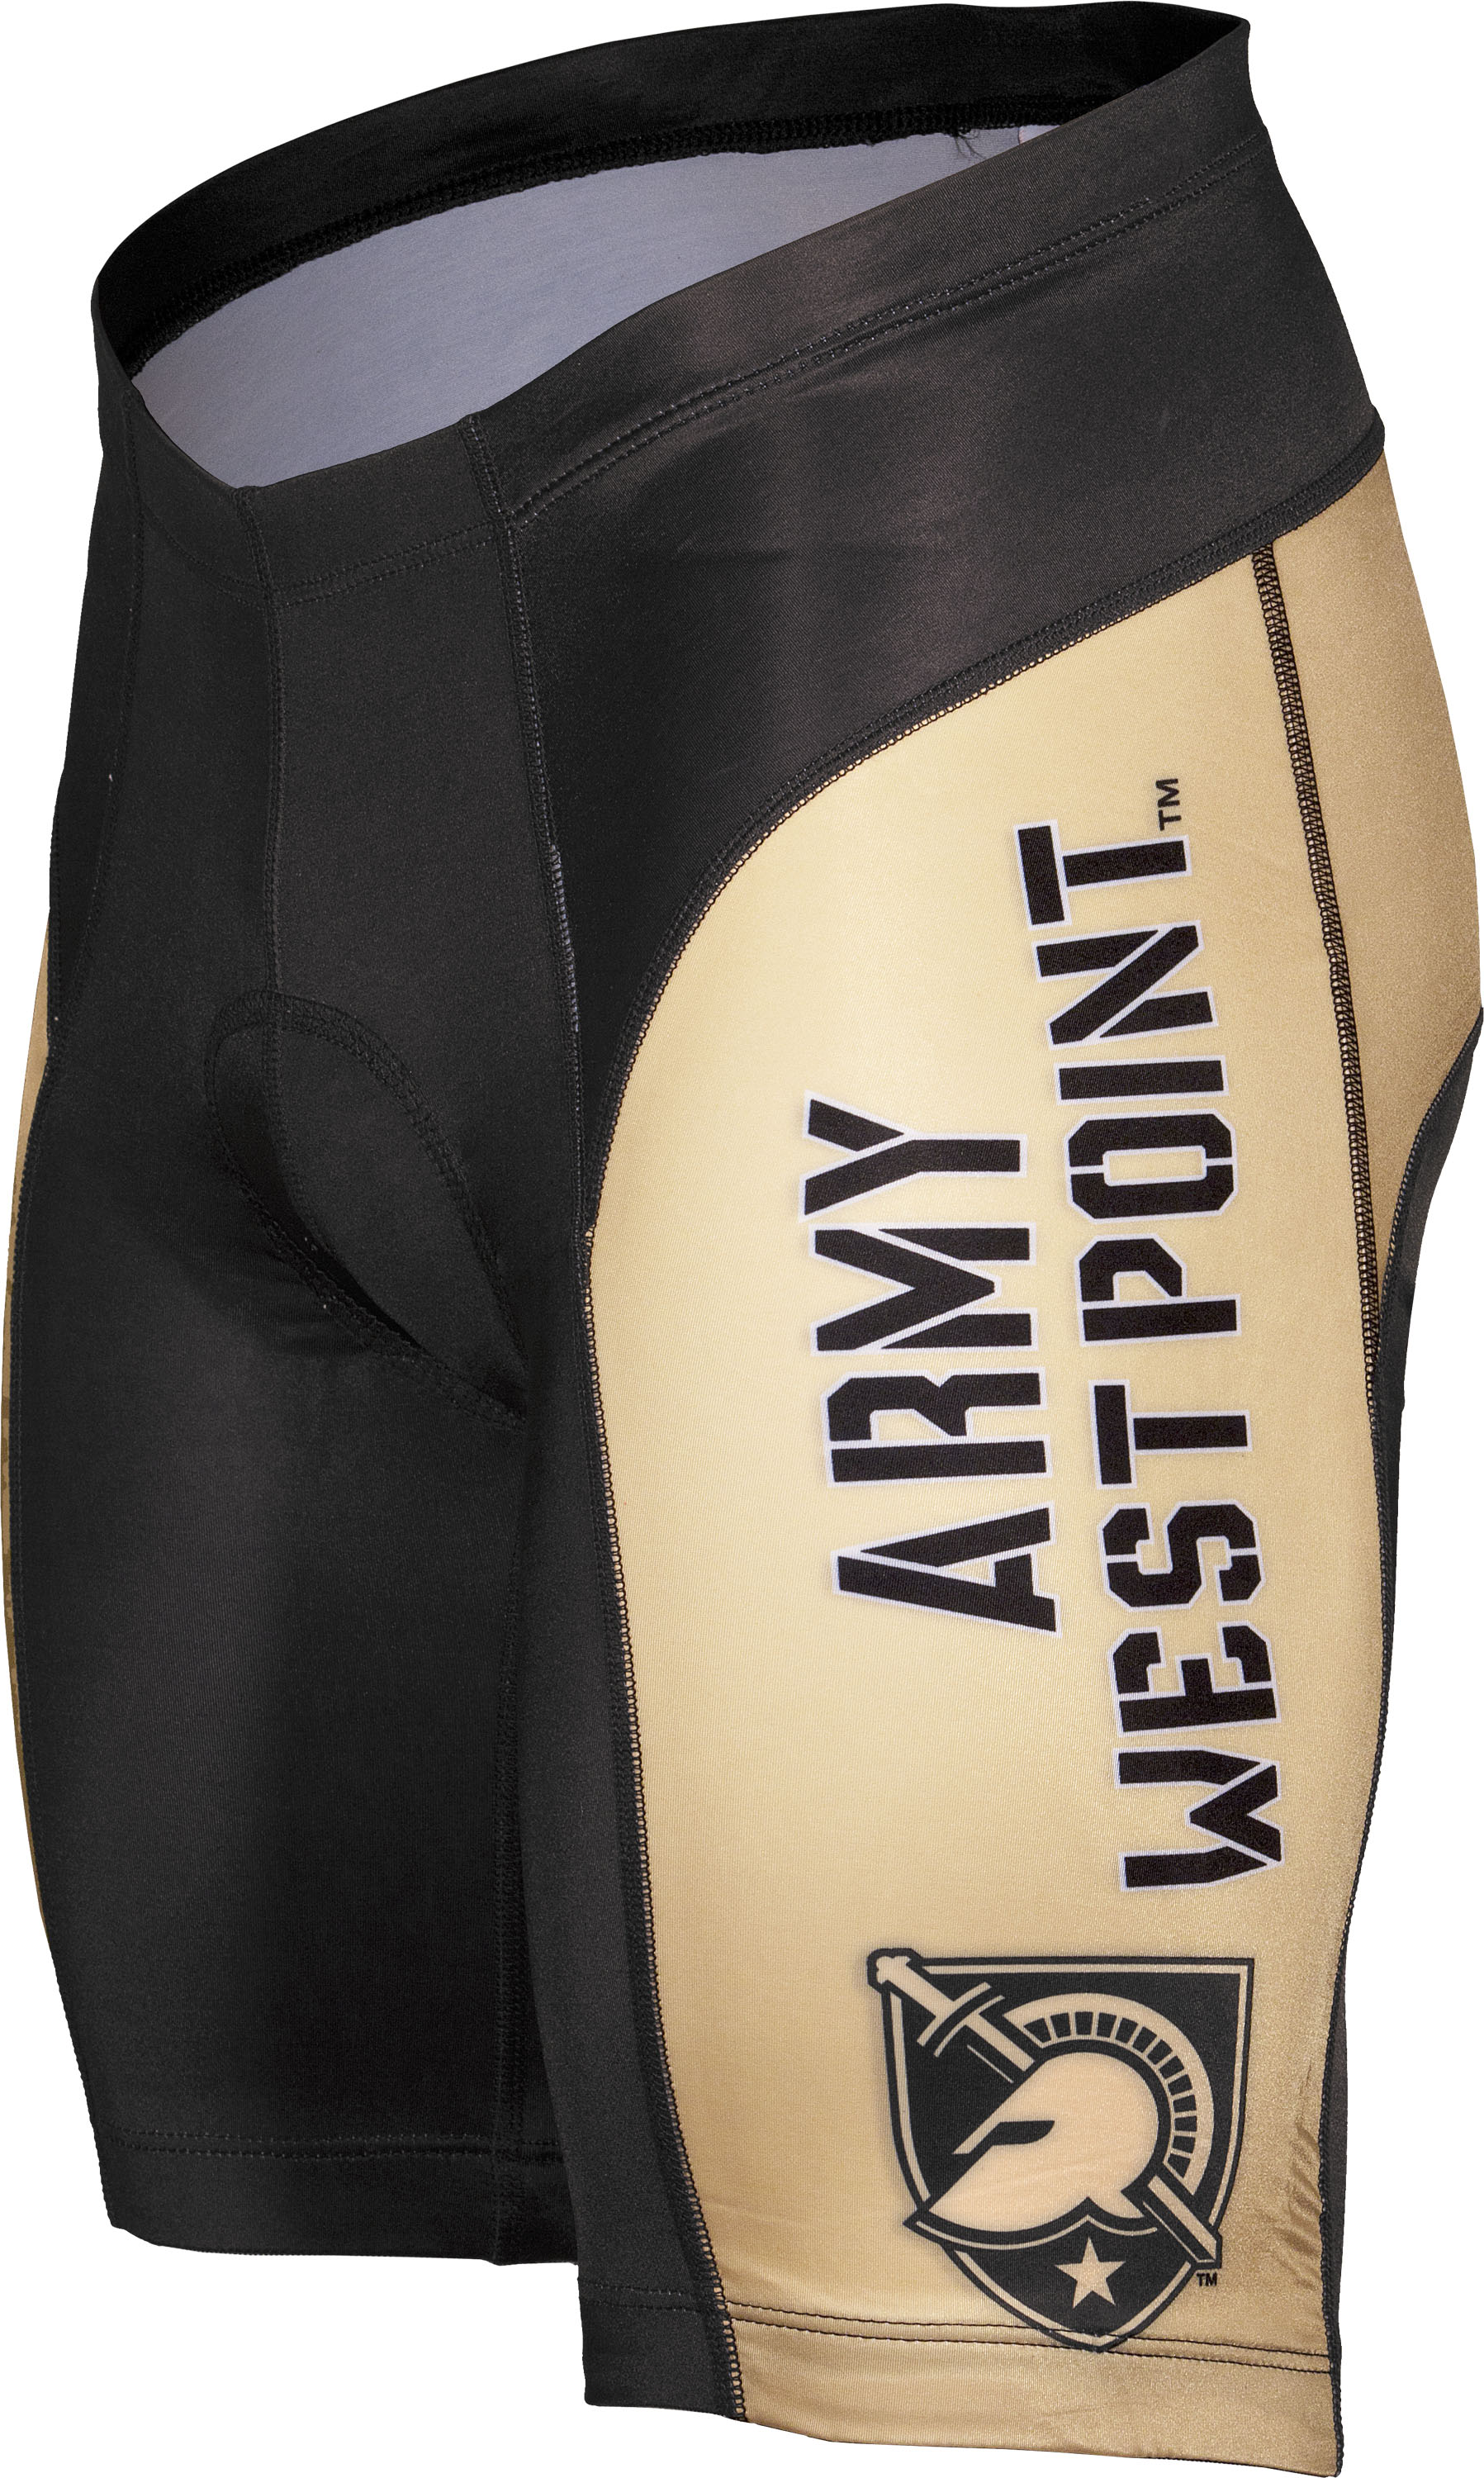 West Point Military Academy ARMY Cycling Shorts